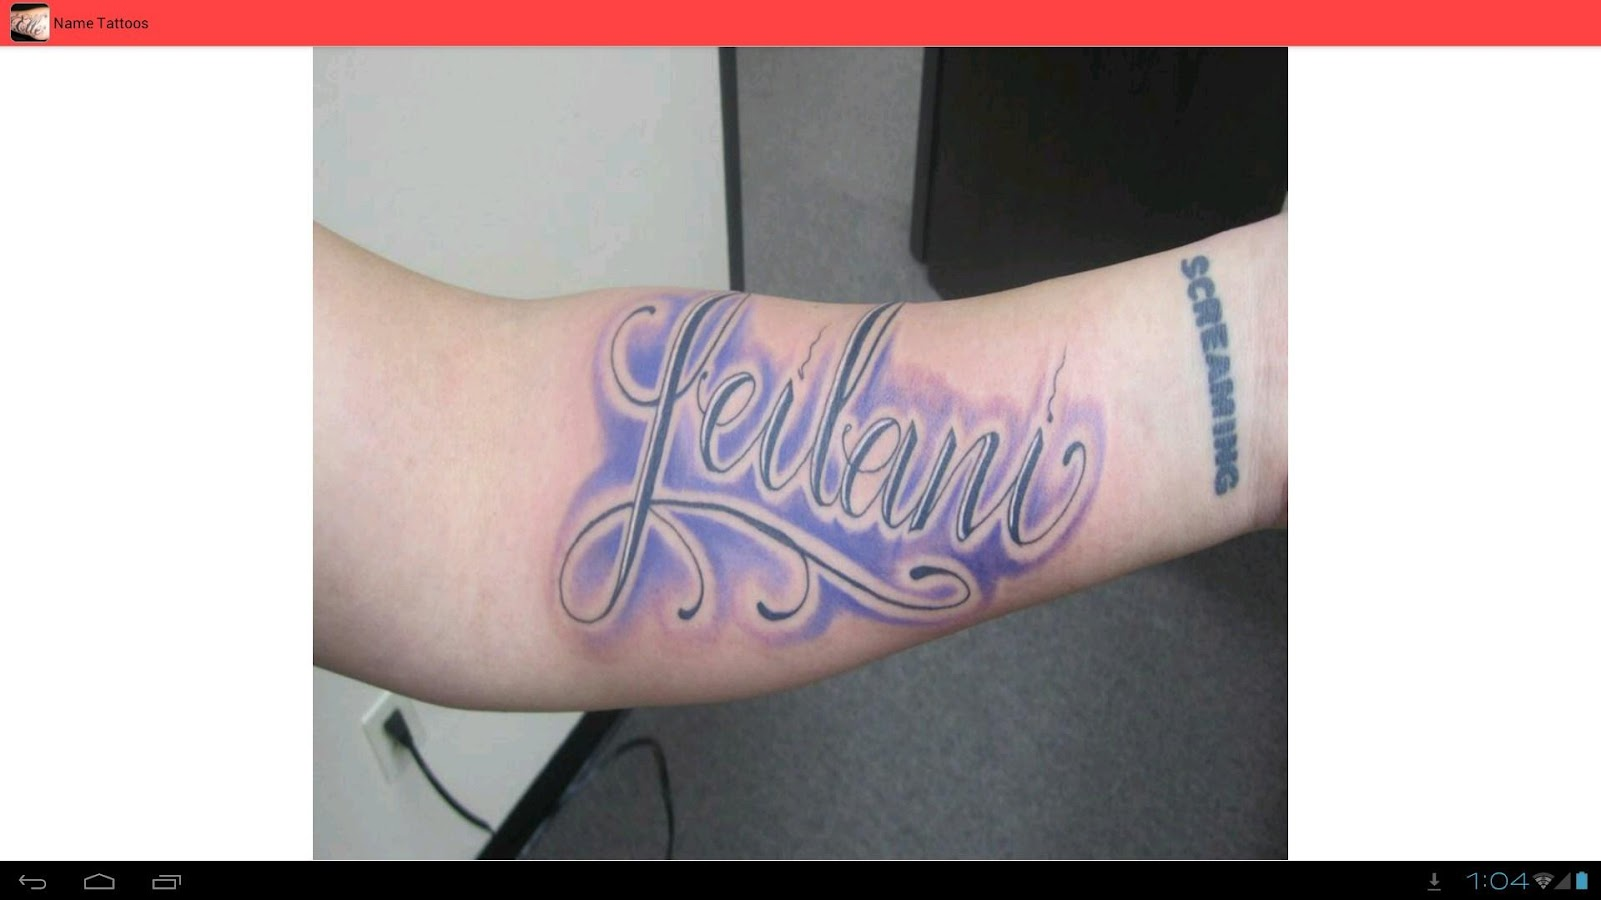 Name Tattoos Ideas - Android Apps on Google Play